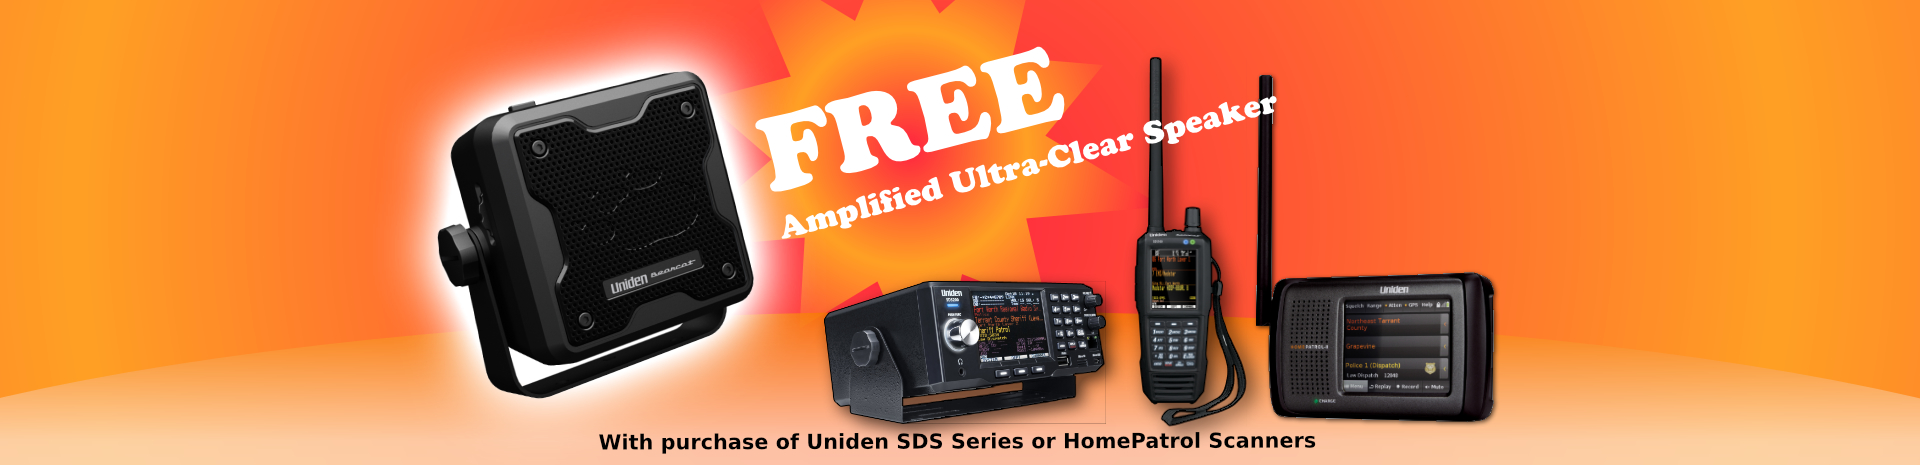 Free Uniden BC23A Amplified Speaker with Purchase of SDS100, SDS